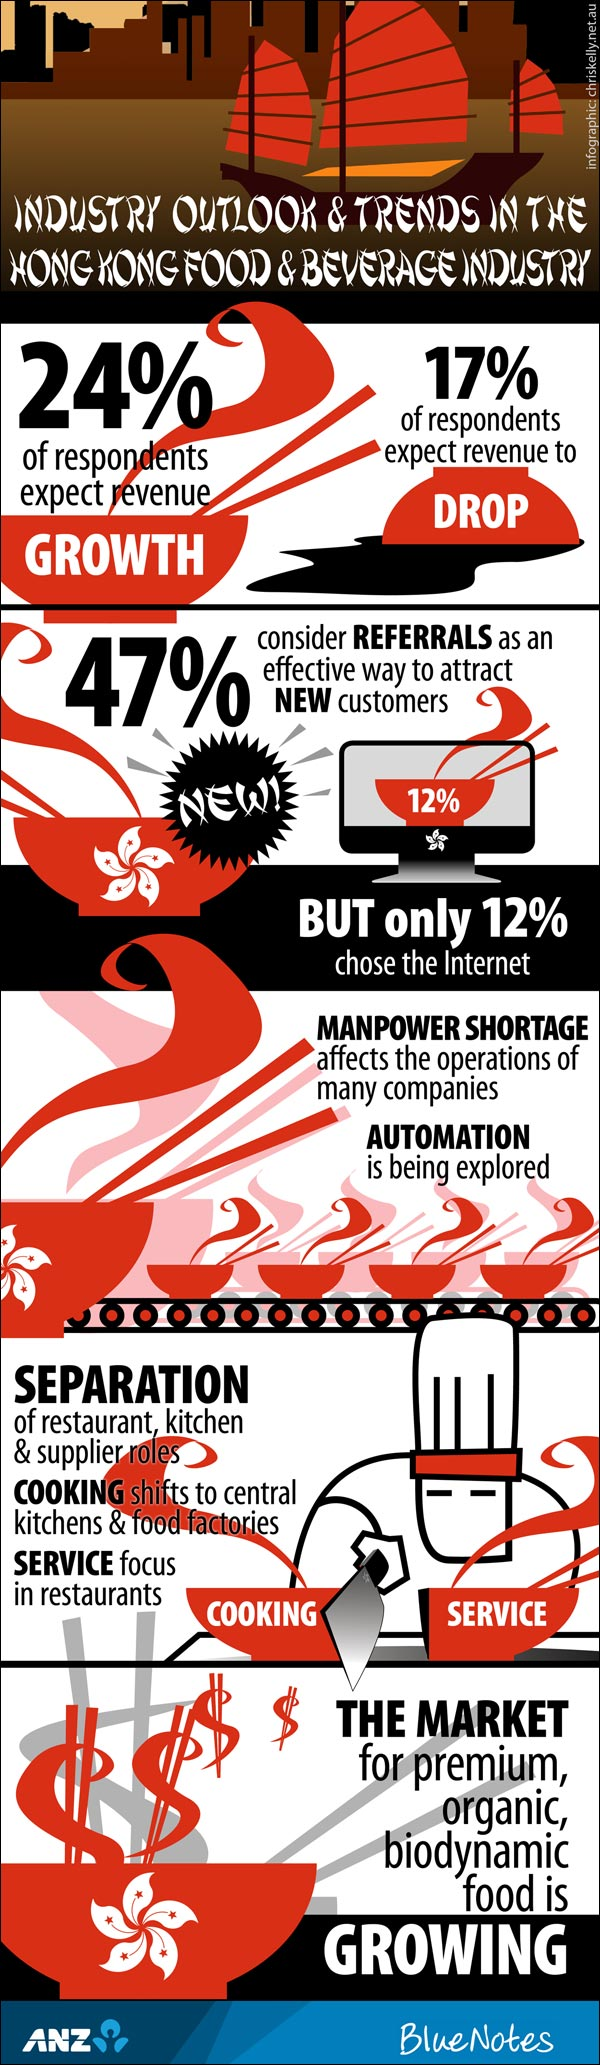 infographic hong kong food beverage industry trends